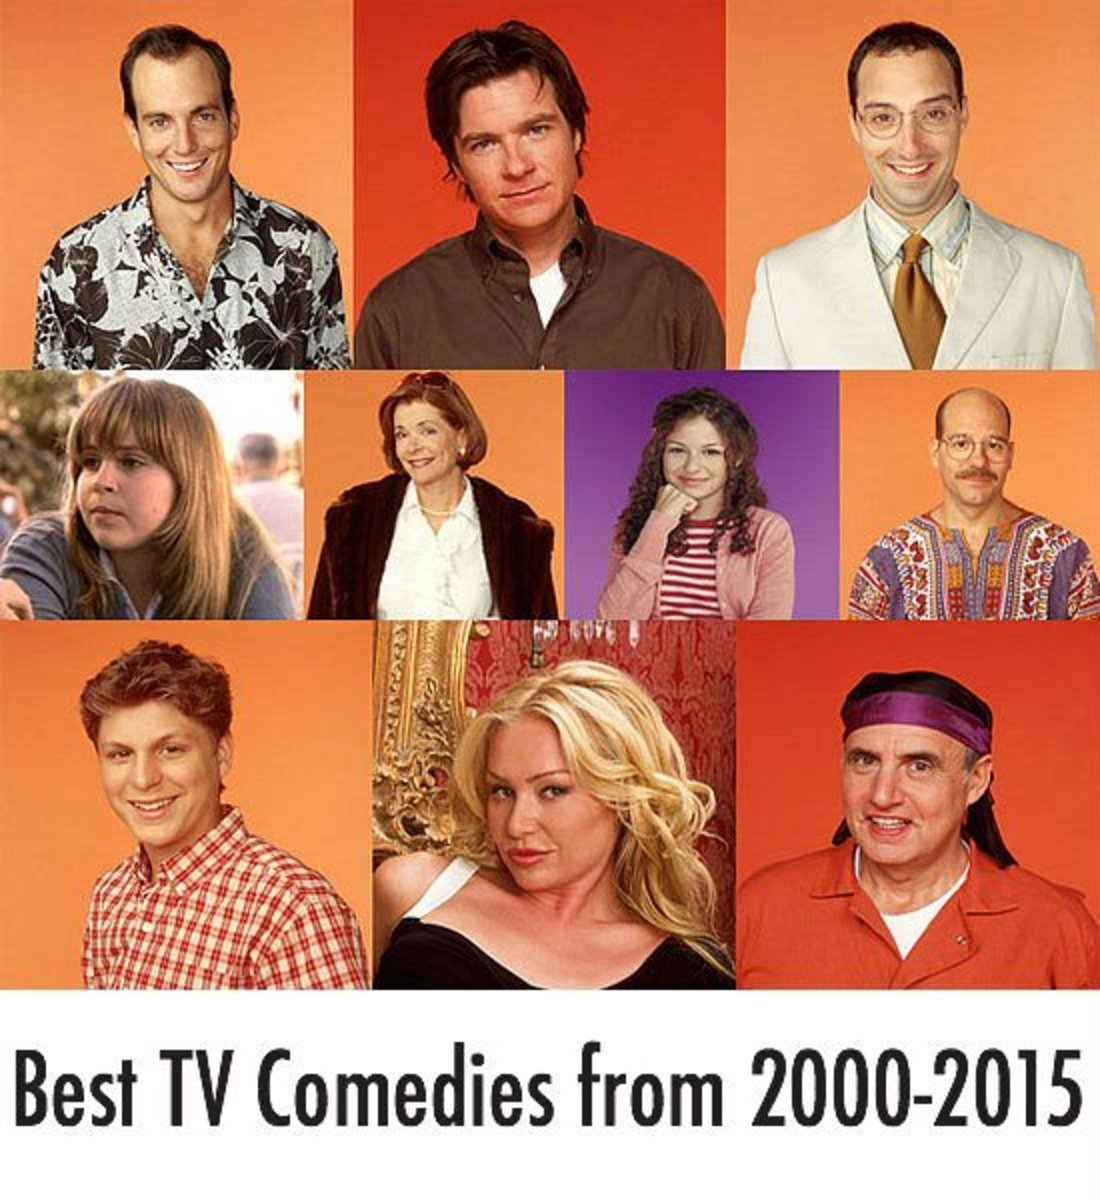 Top 10 Best Comedy TV Shows 2000 to 2015